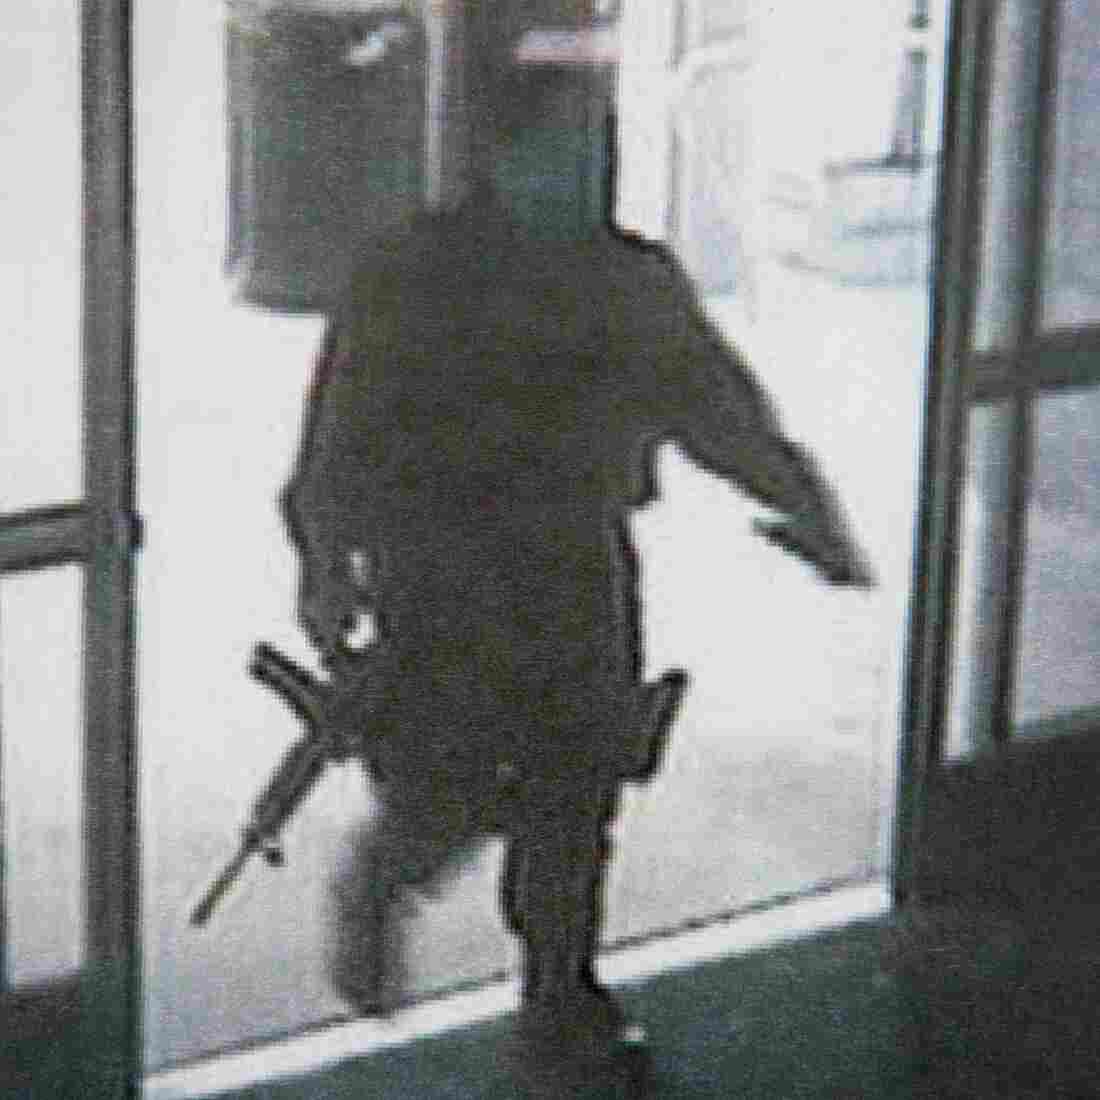 This photo provided by the Santa Monica Police Department during a news conference Saturday shows a frame grab from a surveillance camera revealing the suspect entering Santa Monica College on Friday.